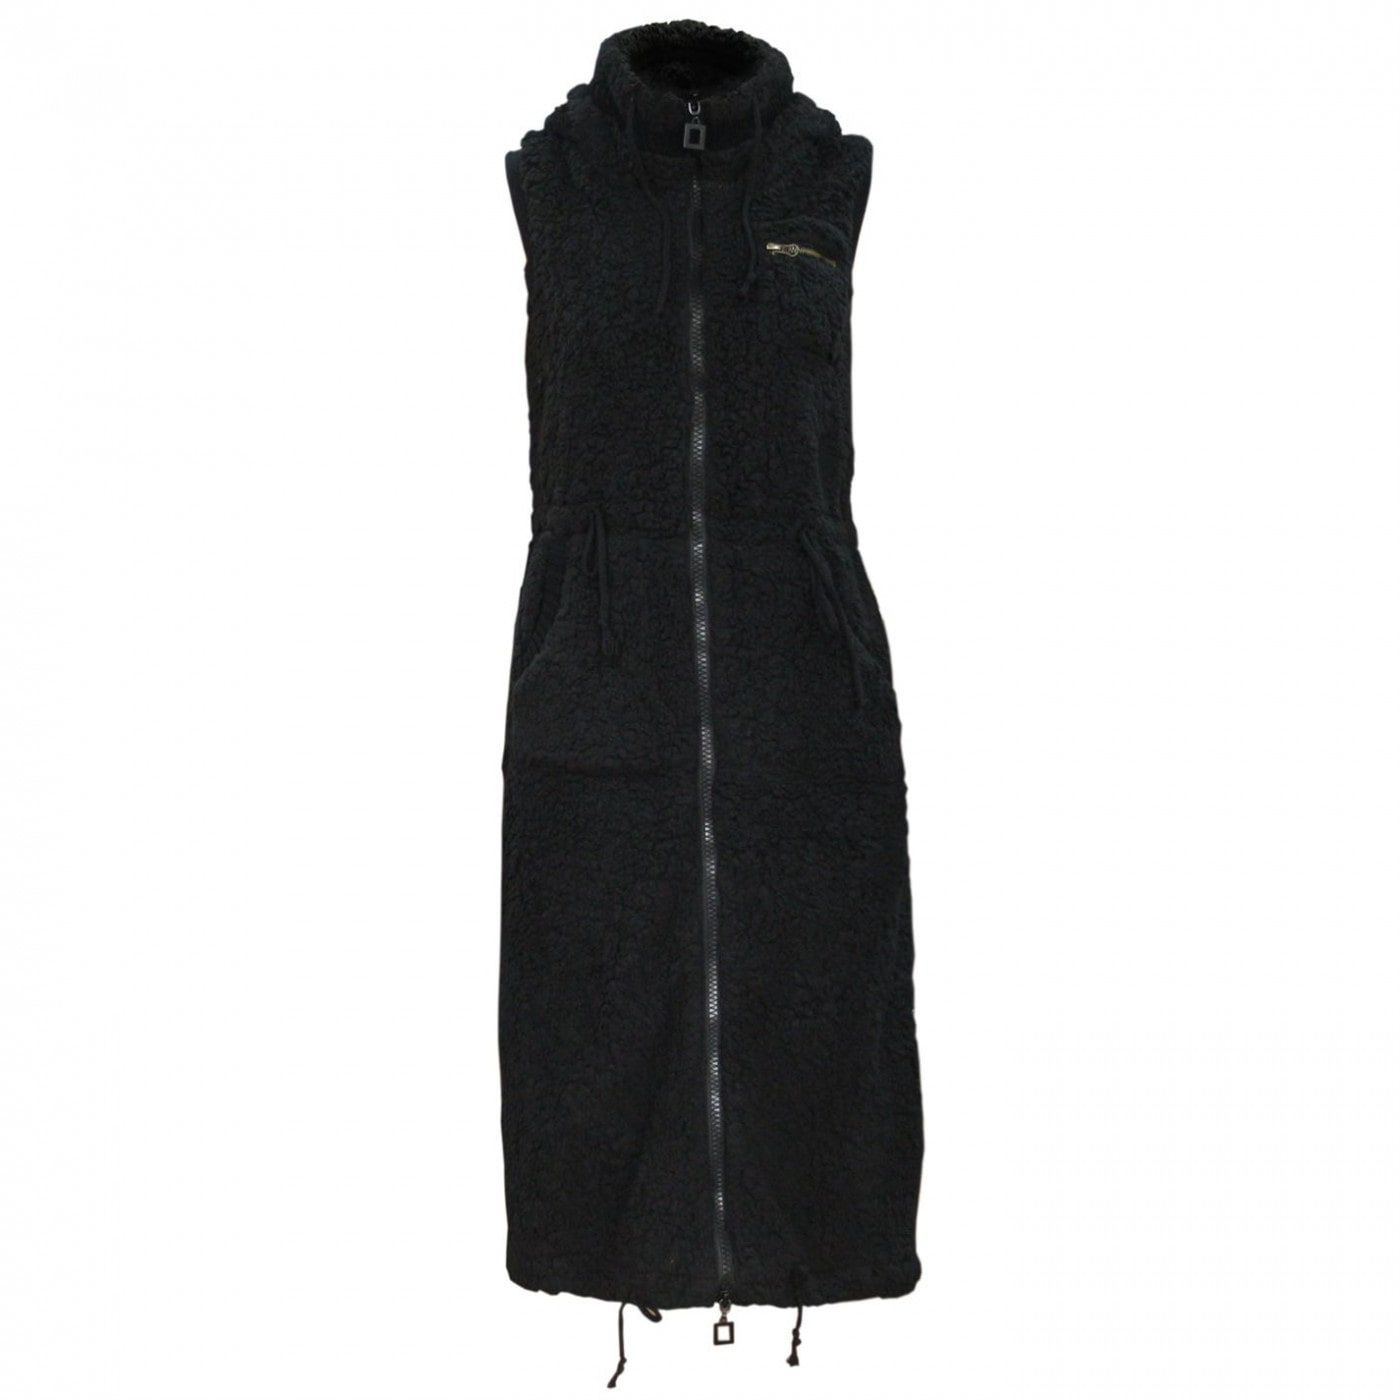 Lee Cooper Jumper Dress Ladies